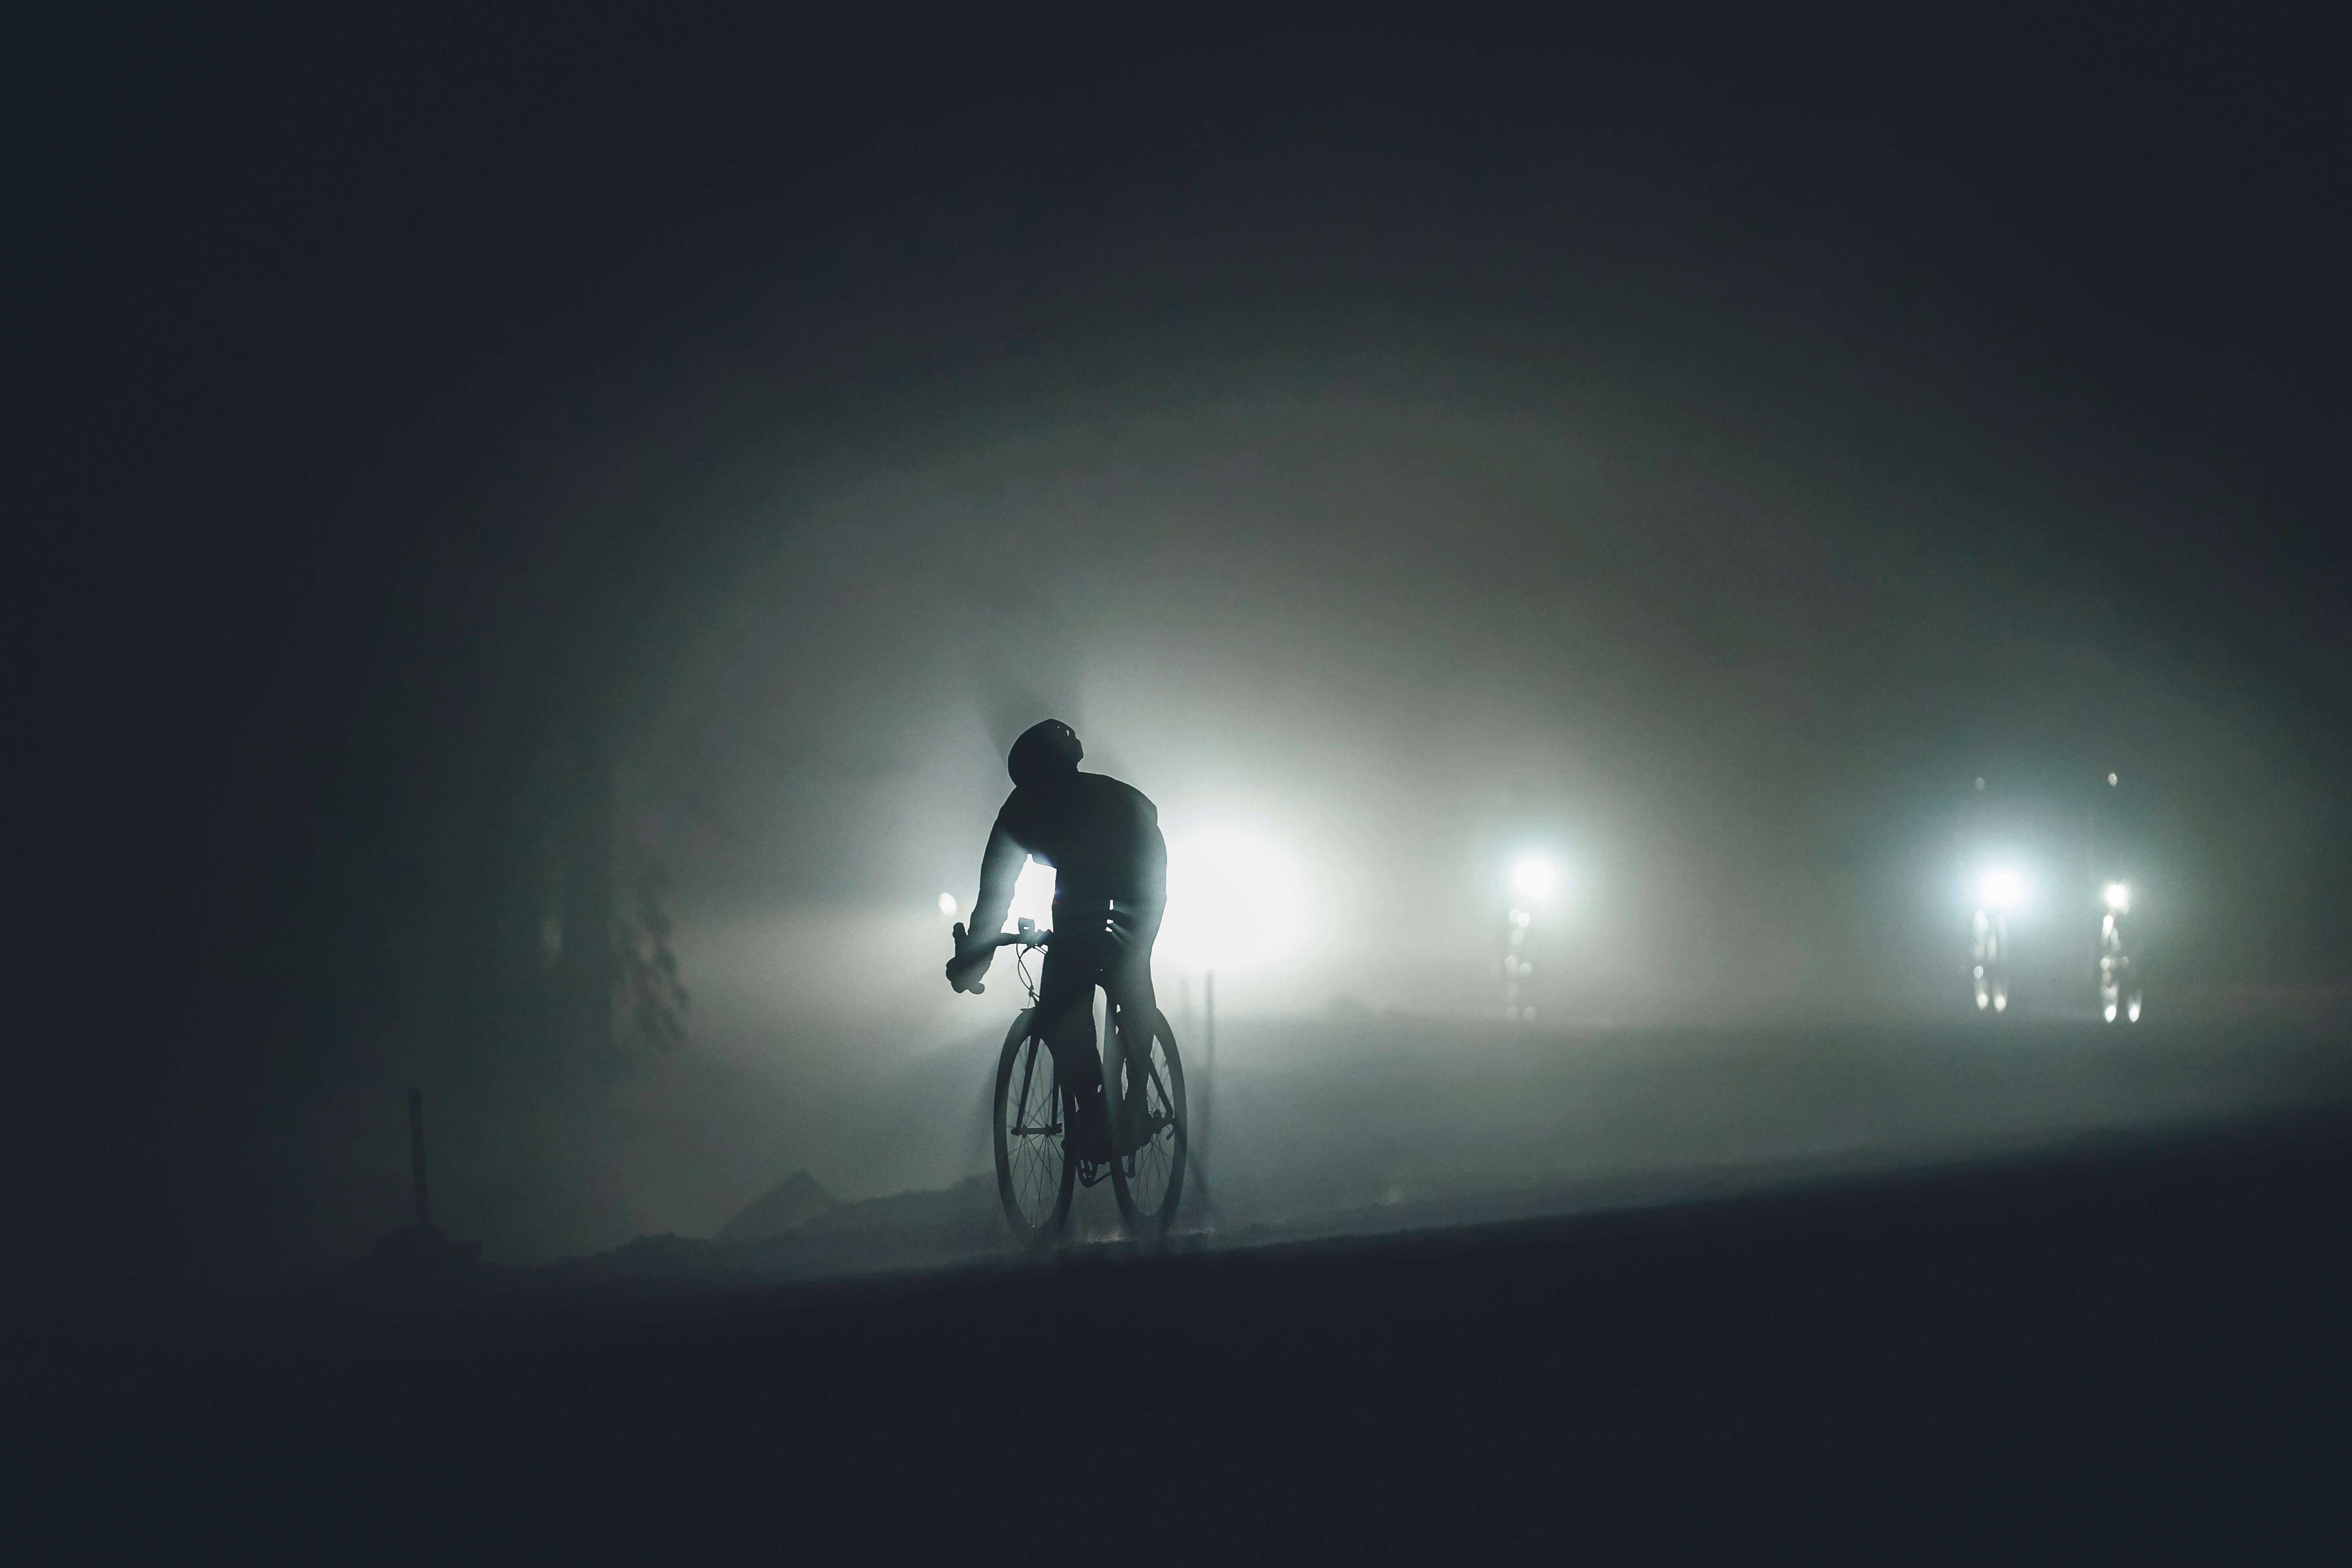 Volodya Voronin  cycling photography for manfrott